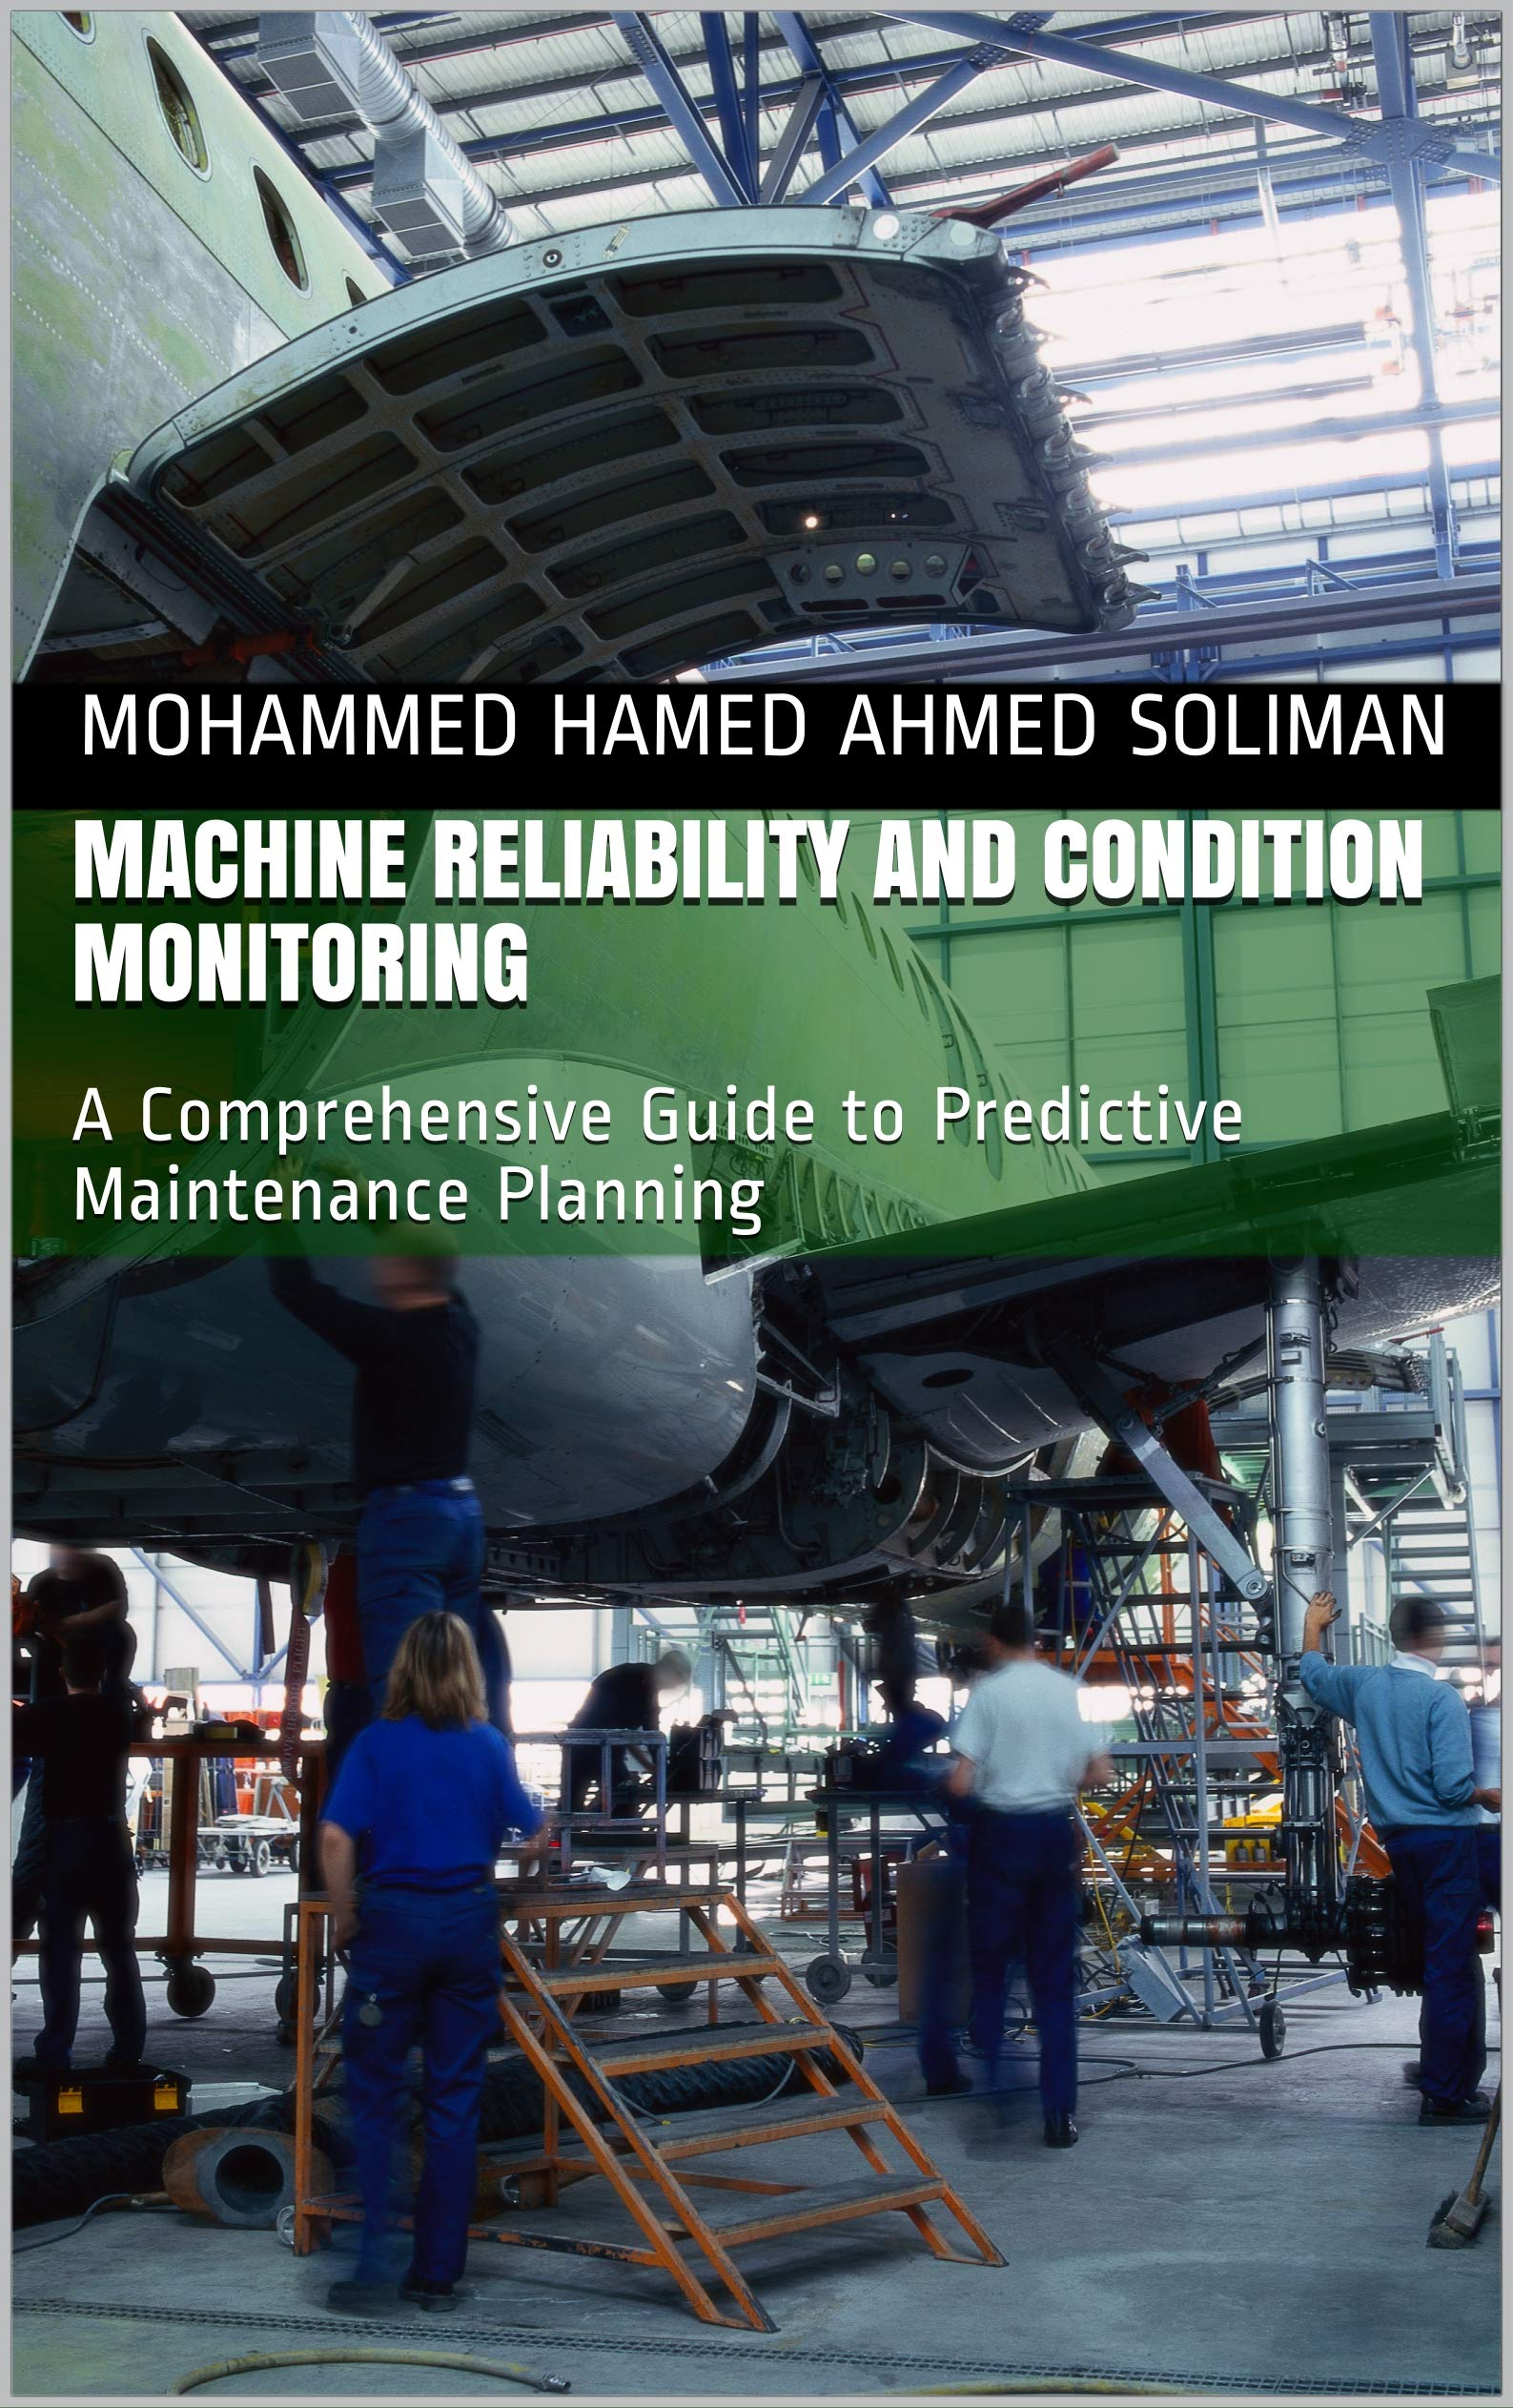 Machine Reliability and Condition Monitoring: A Comprehensive Guide to Predictive Maintenance Planning